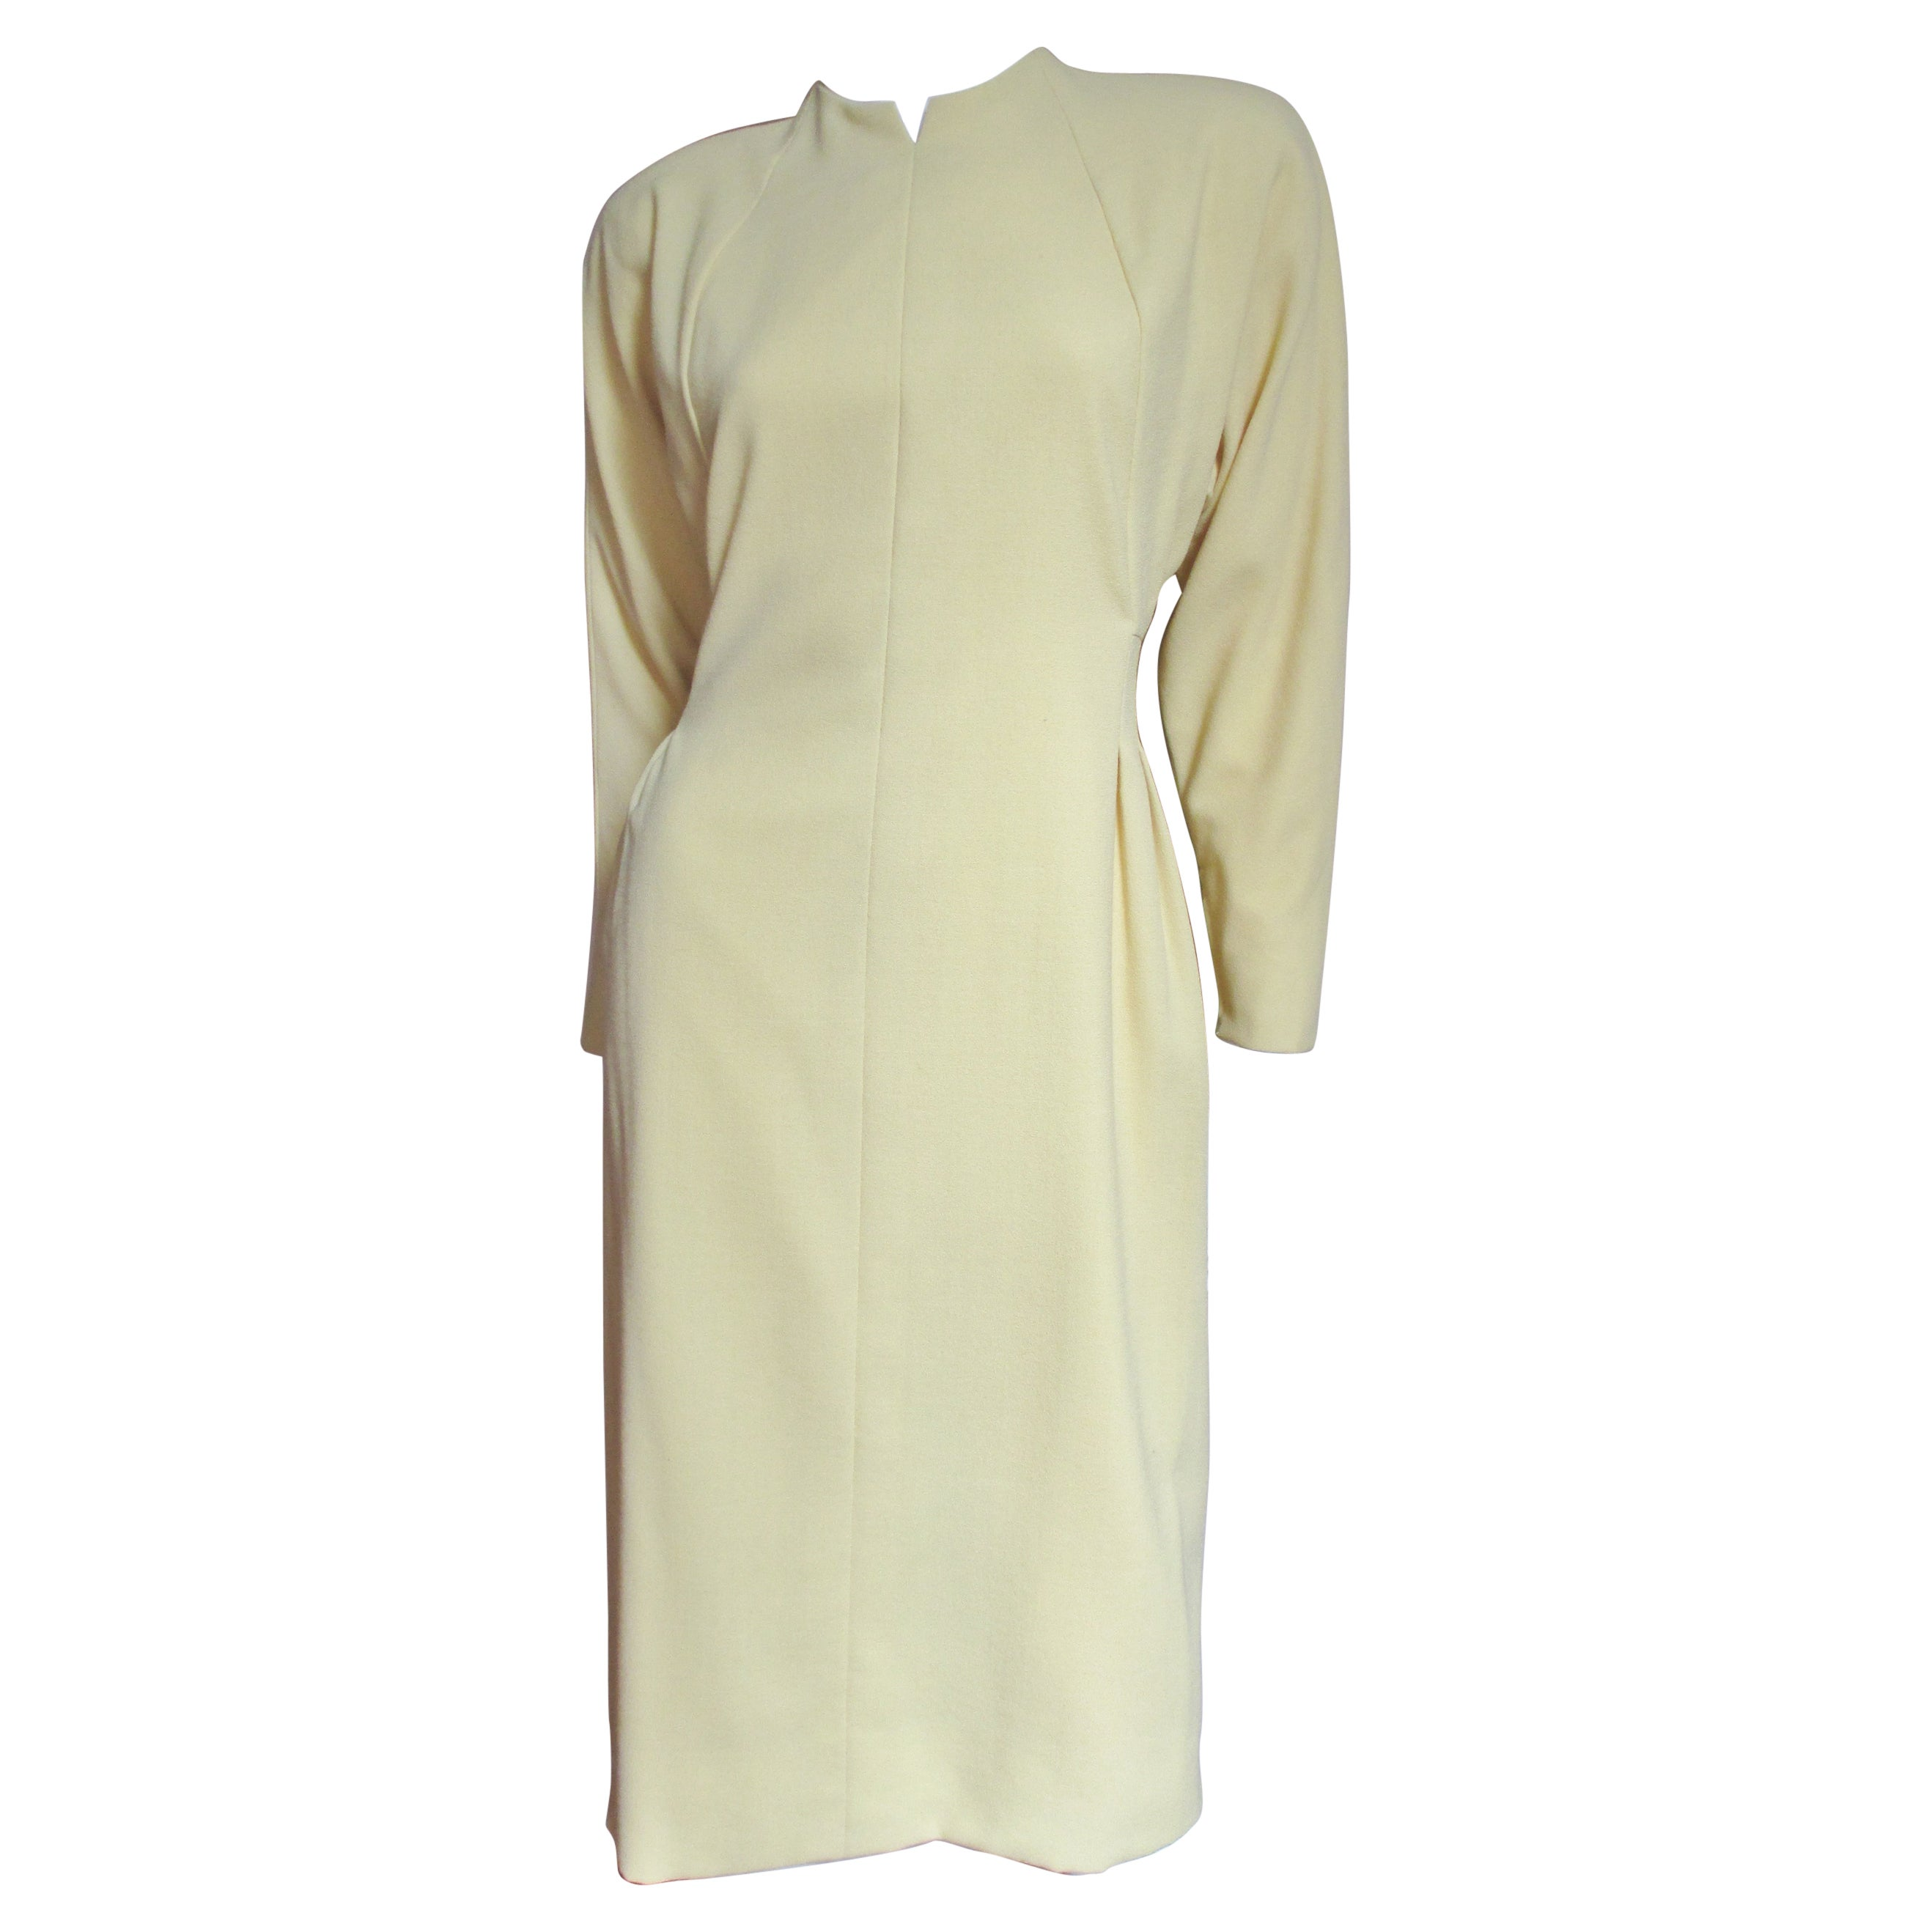 1970s Pauline Trigere Dress with Seaming